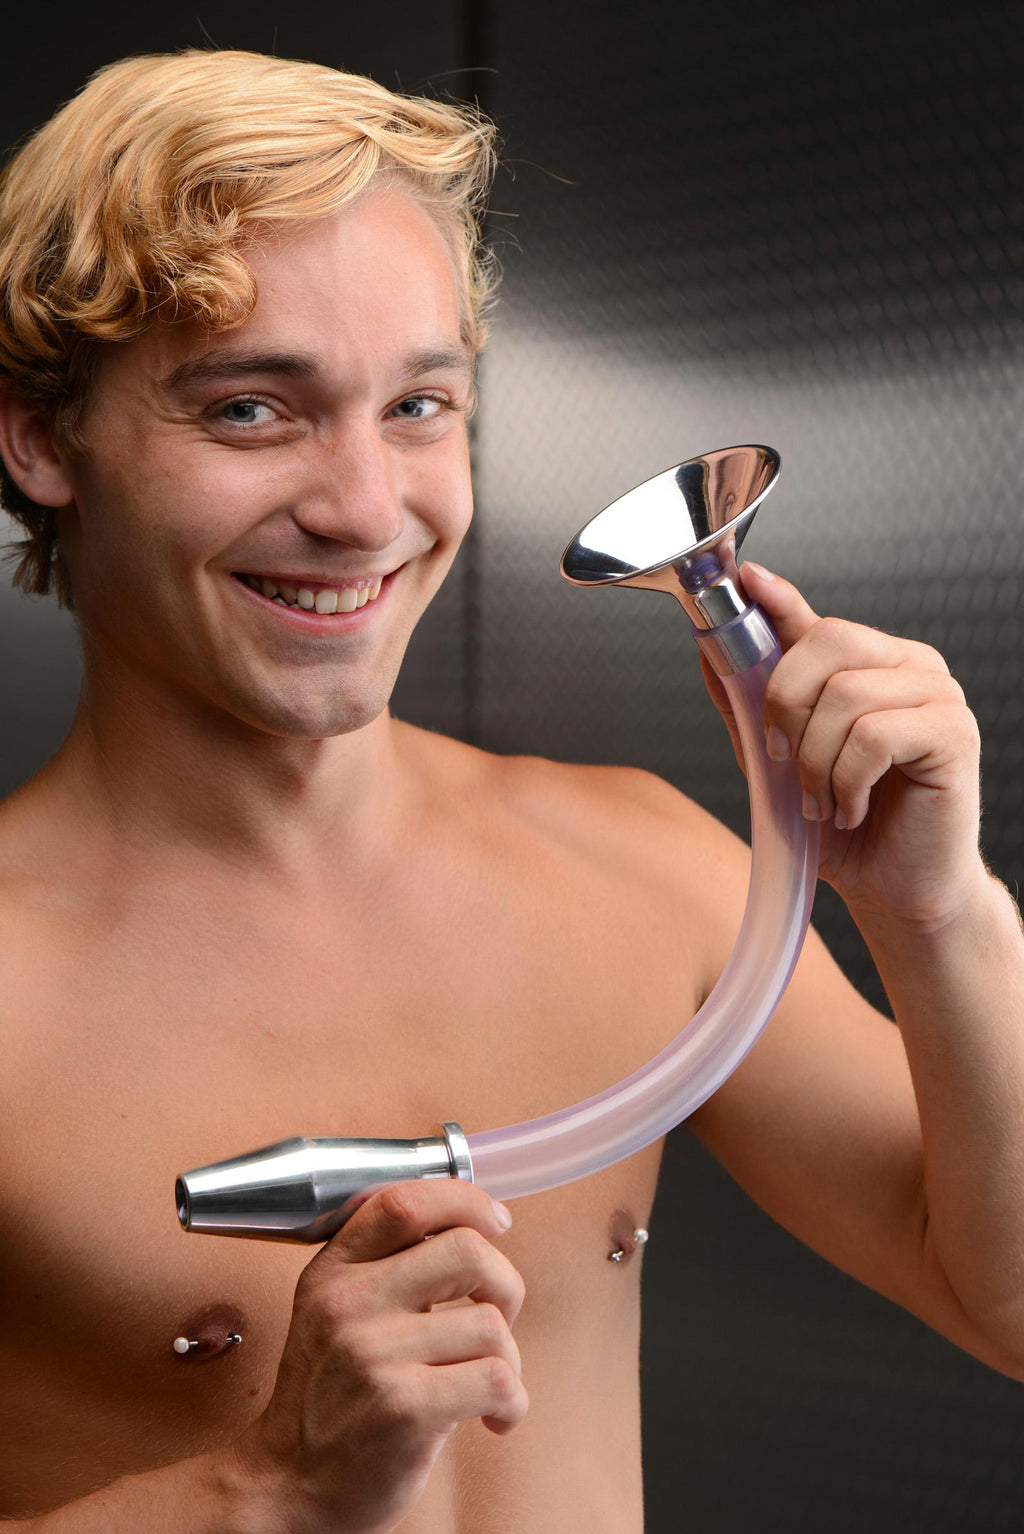 Stainless Steel Ass Funnel with Hollow Anal Plug